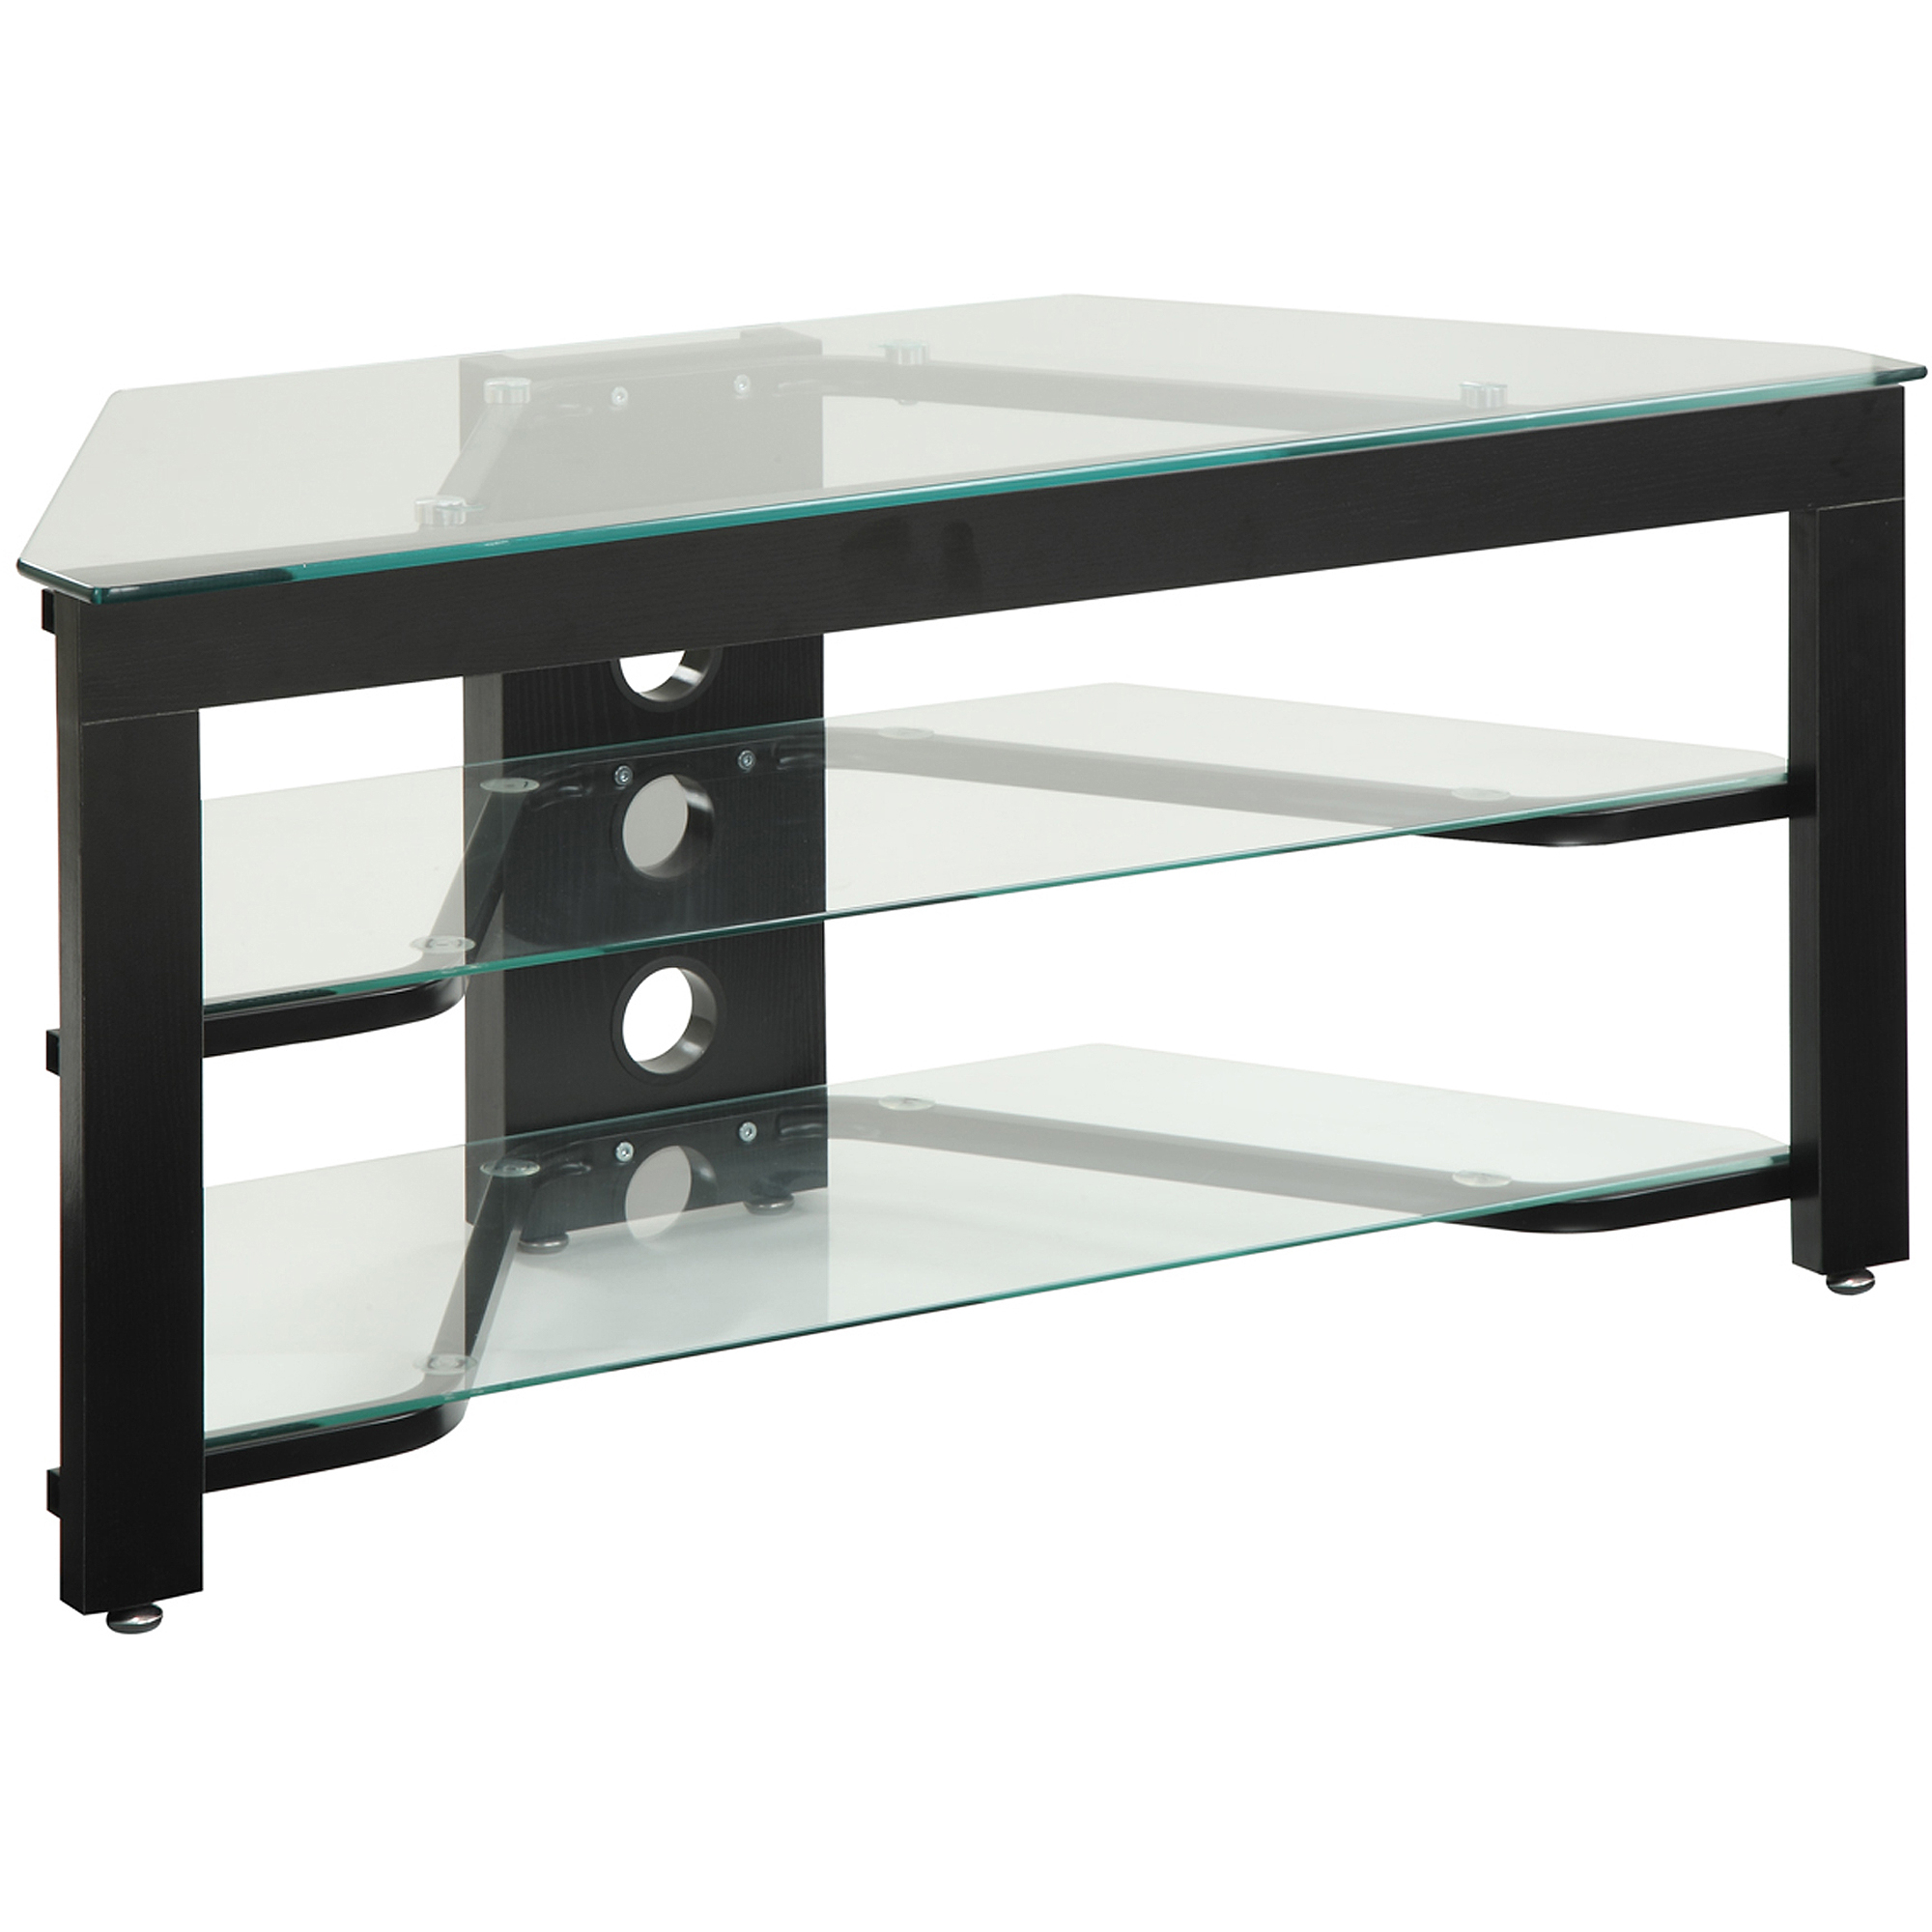 Metal Tv Stand (View 10 of 18)